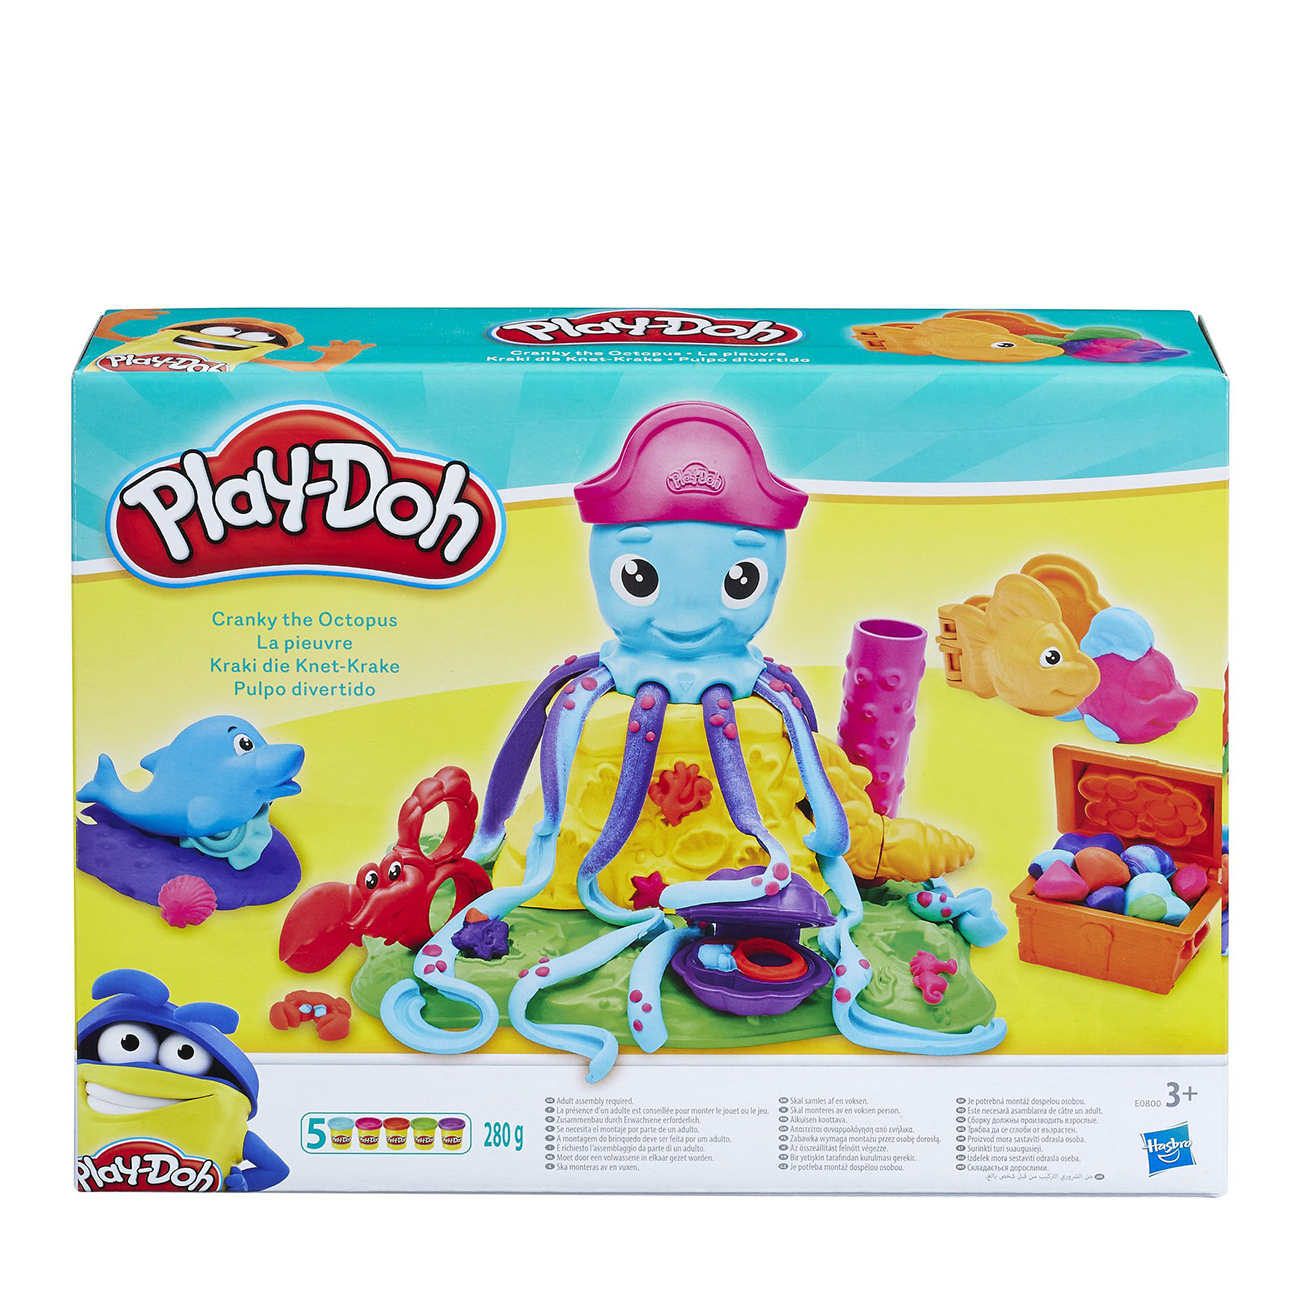 PLAY DOH CRANKY THE OCTOPUS